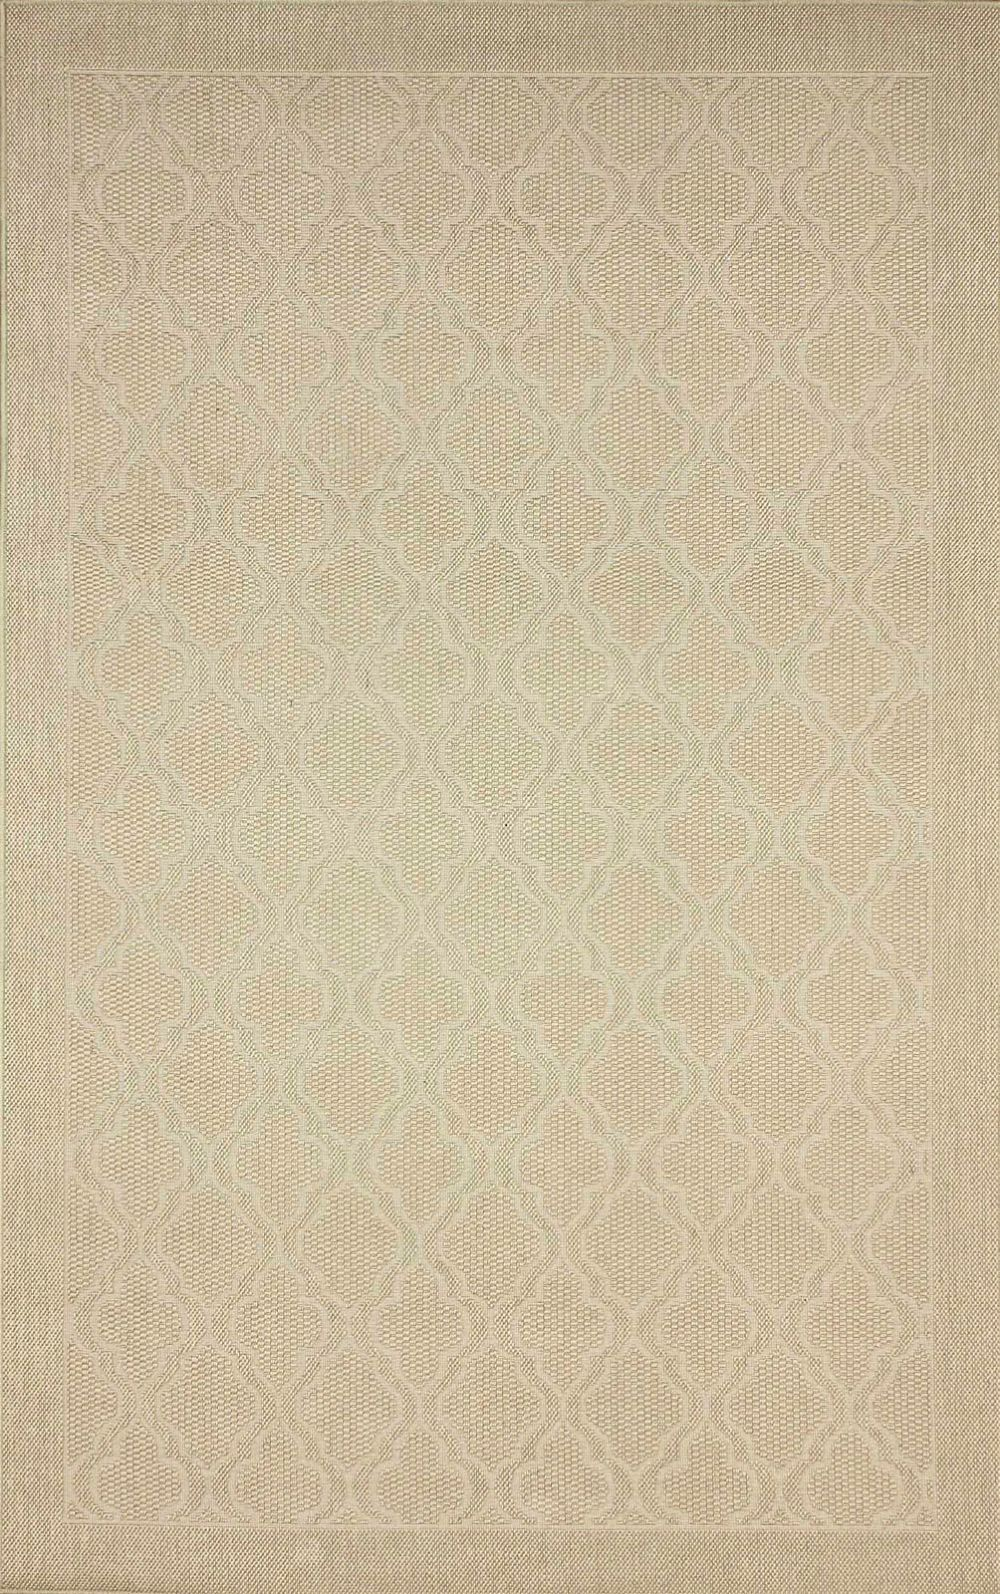 nuloom marie natural fiber area rug collection